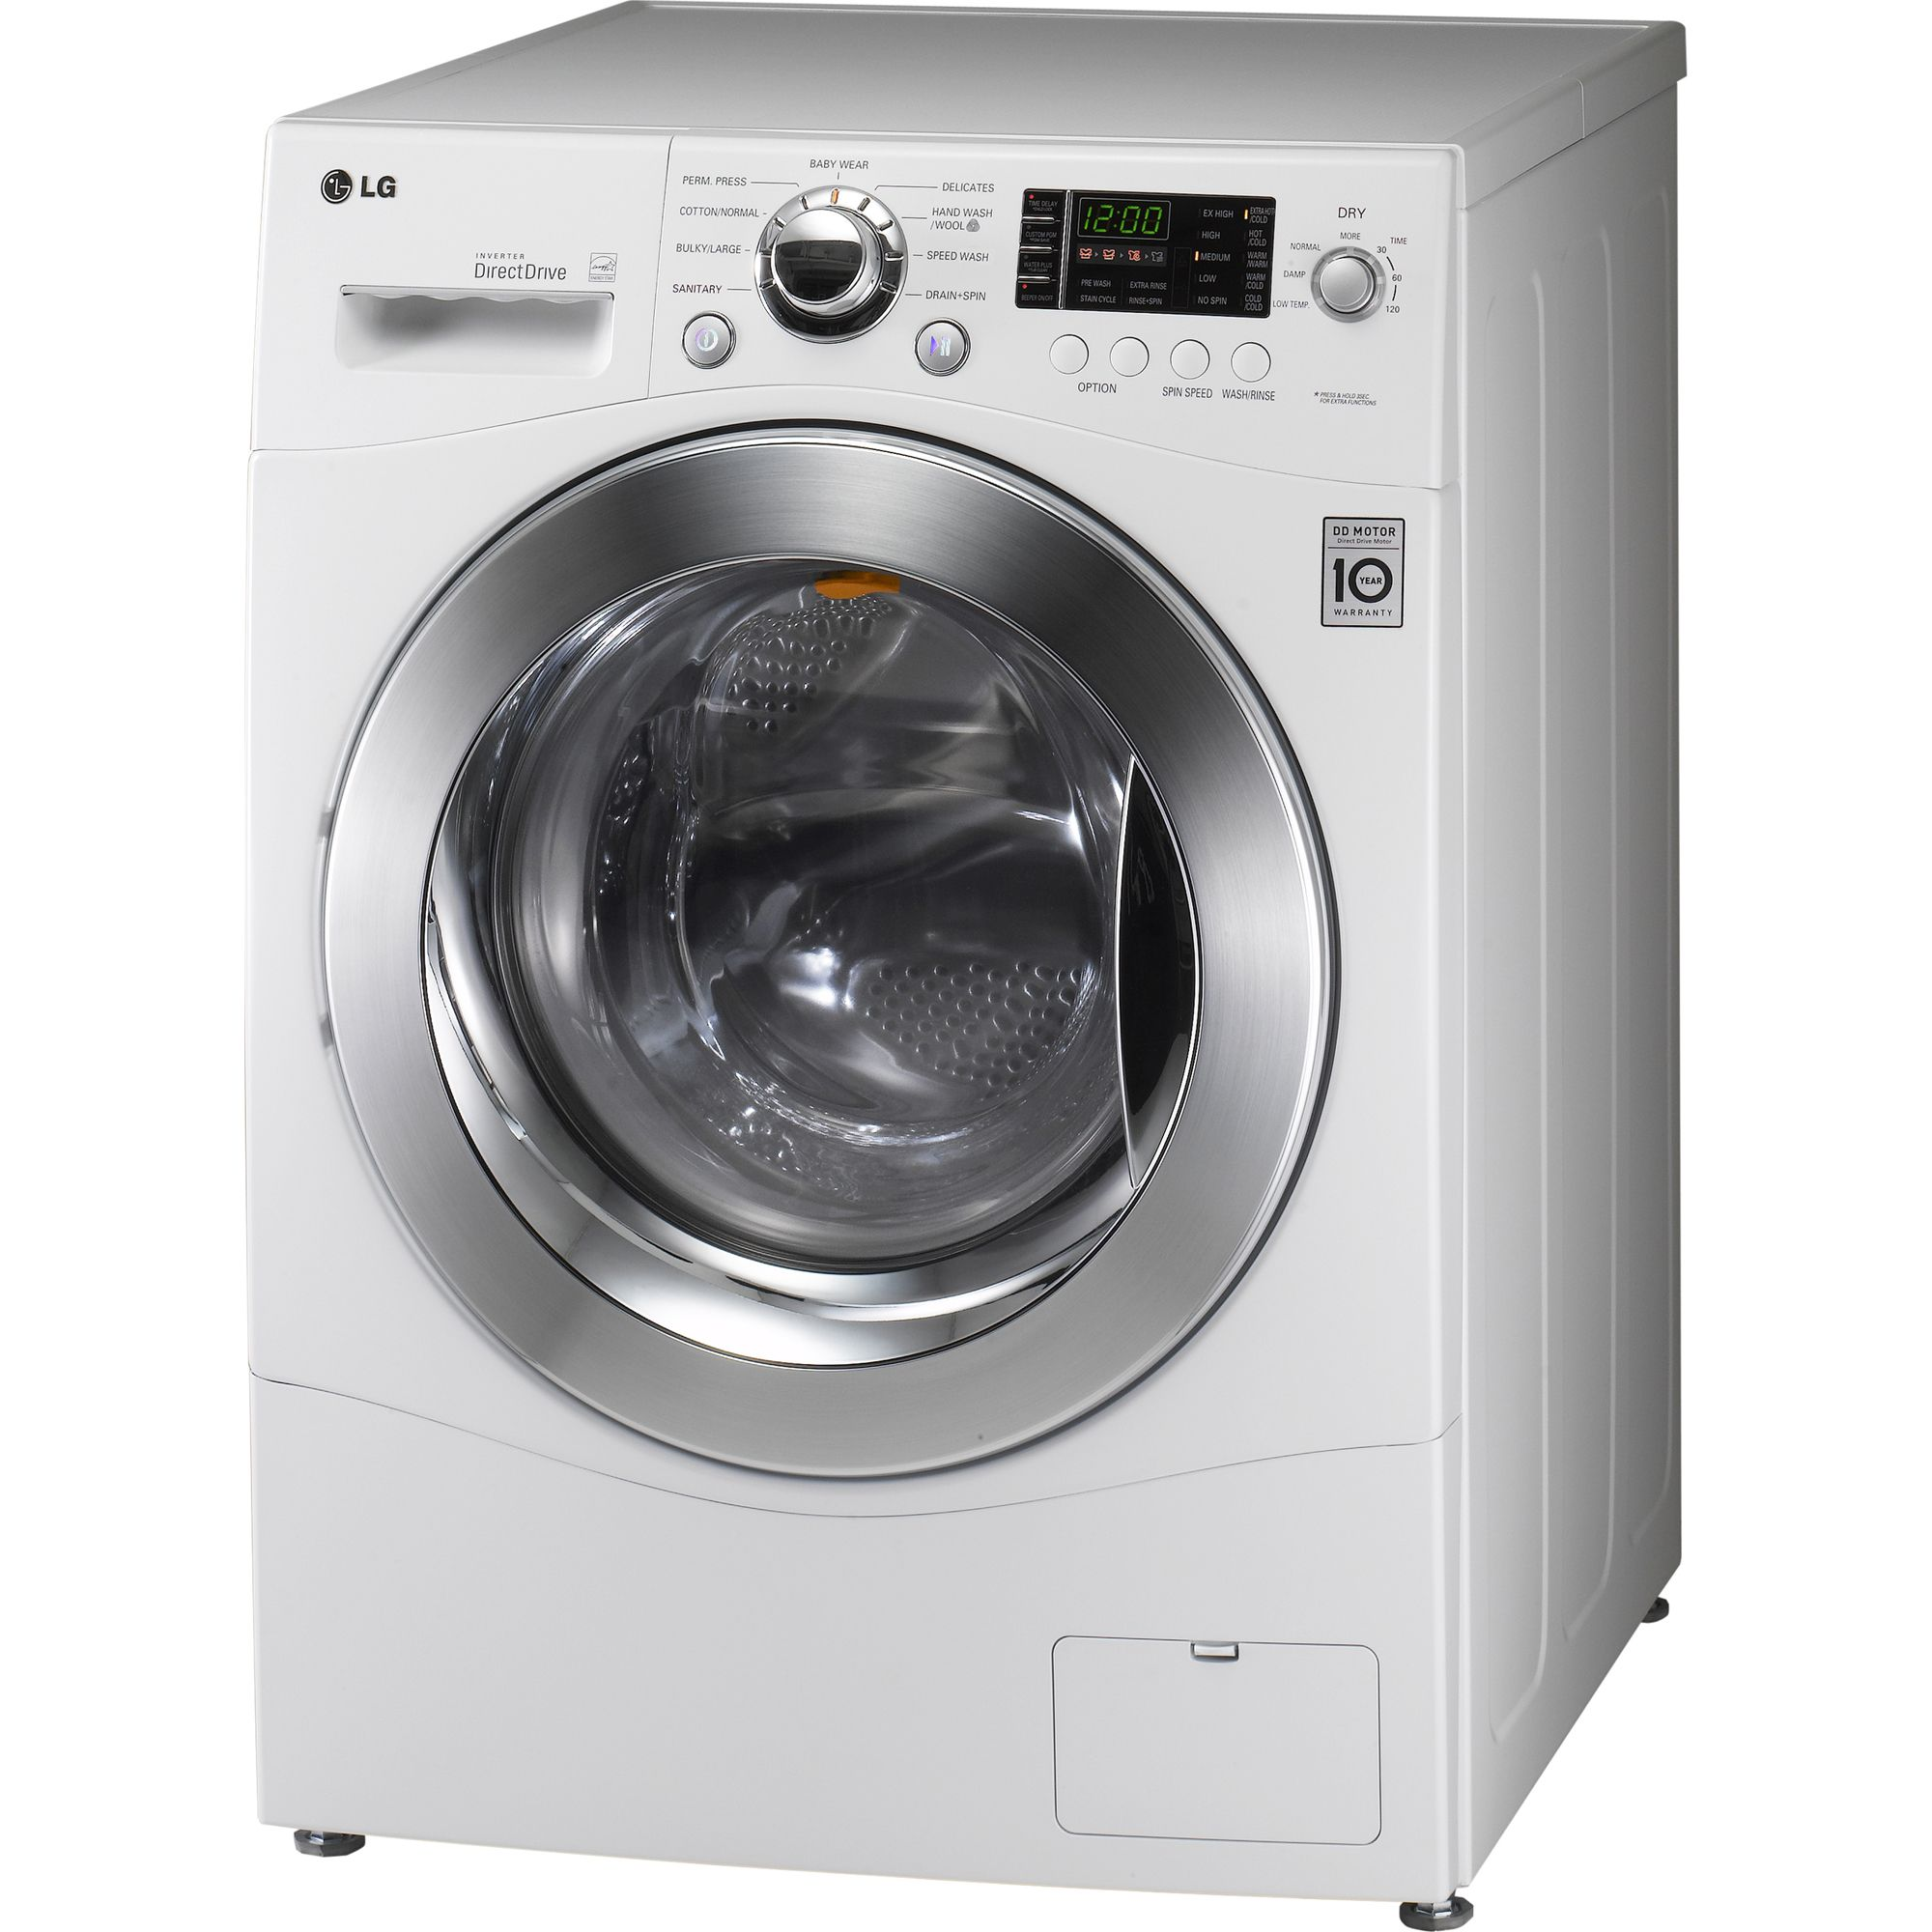 LG 2.3 cu. ft. All-in-One Washer and Dryer